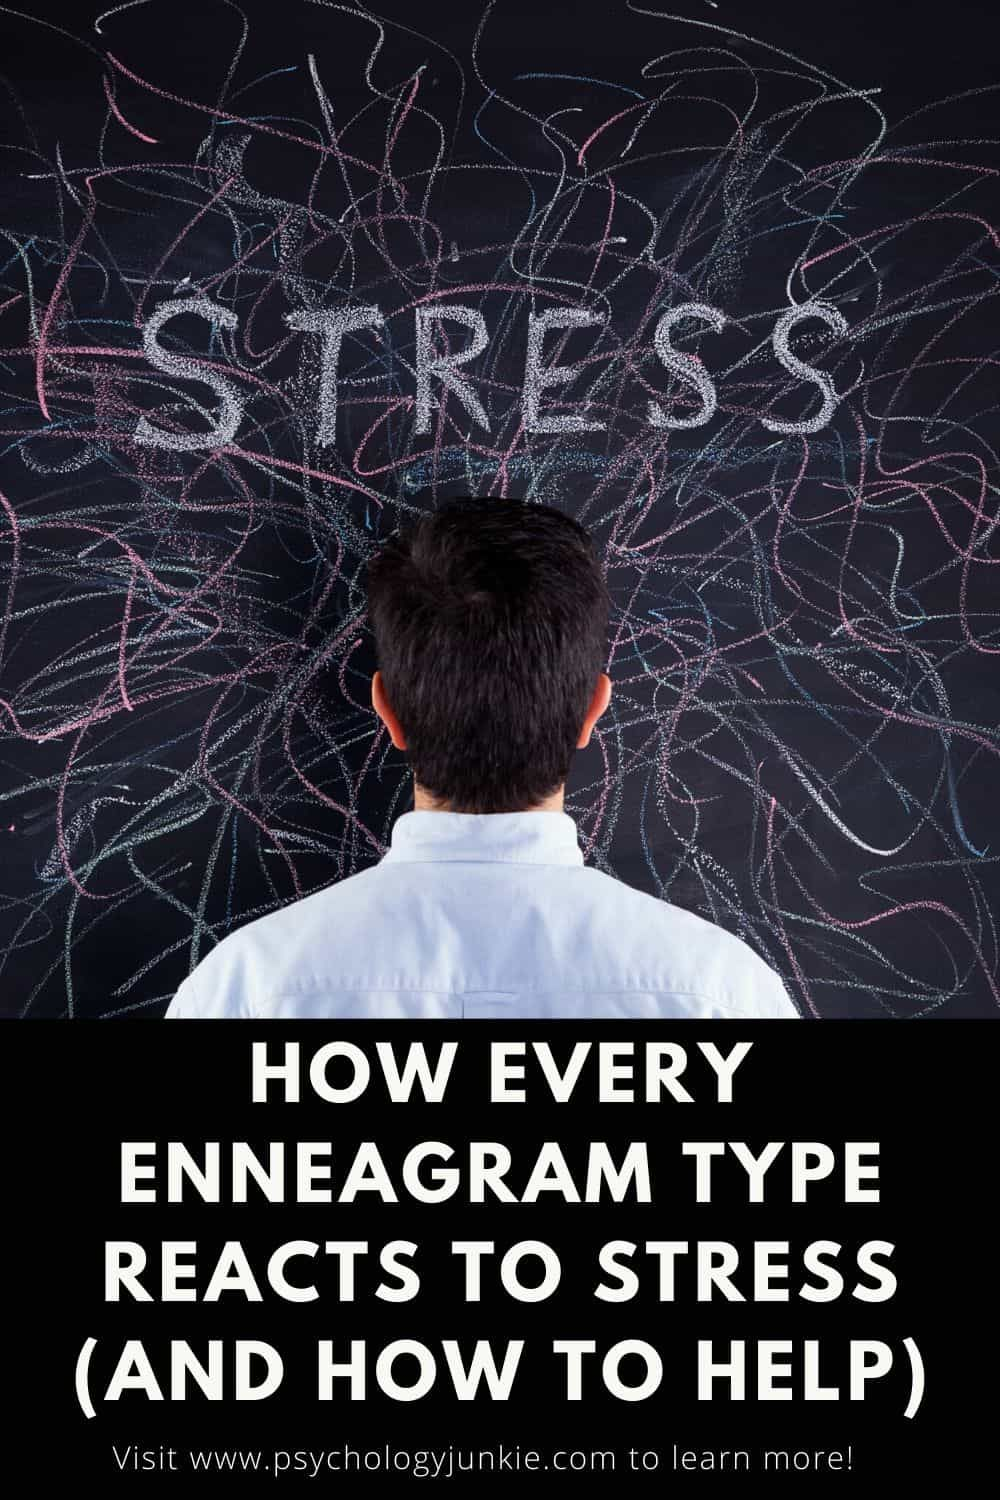 How Every Enneagram Type Reacts to Stress, and How